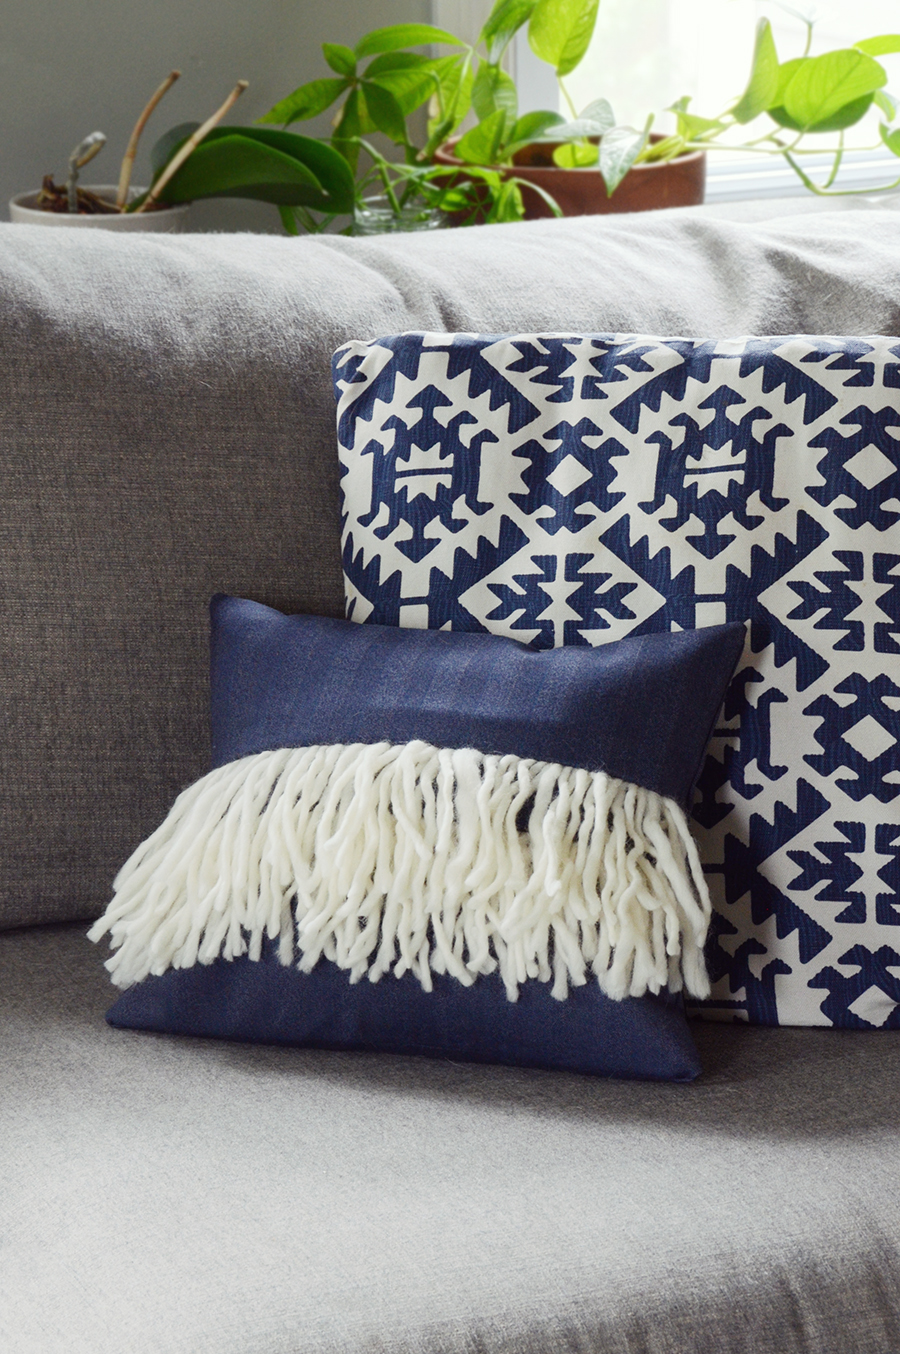 Diy boho fringe pillow cover 14